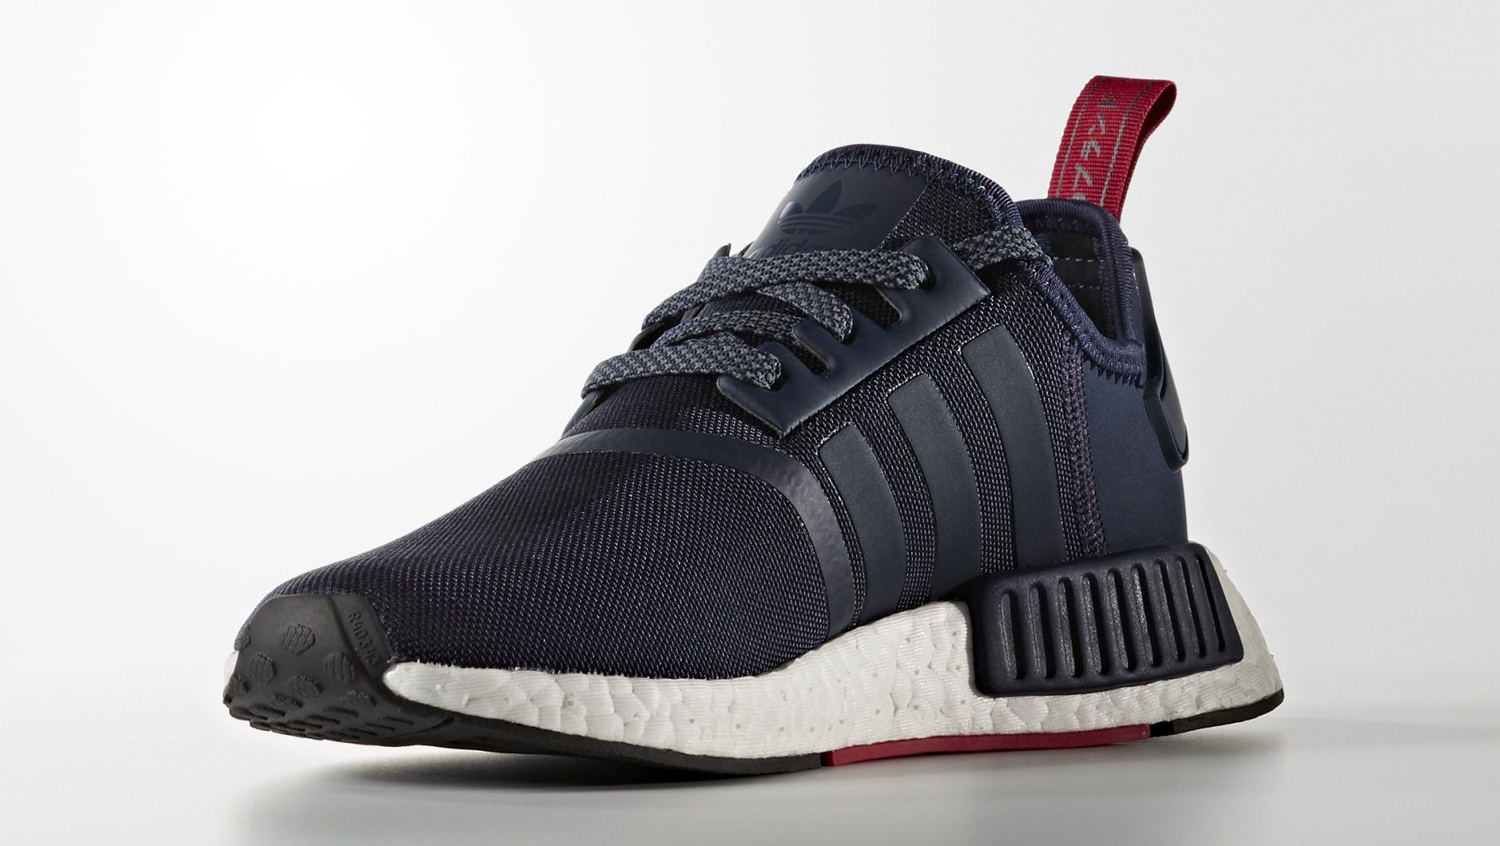 Adidas NMD Navy Suede Medial